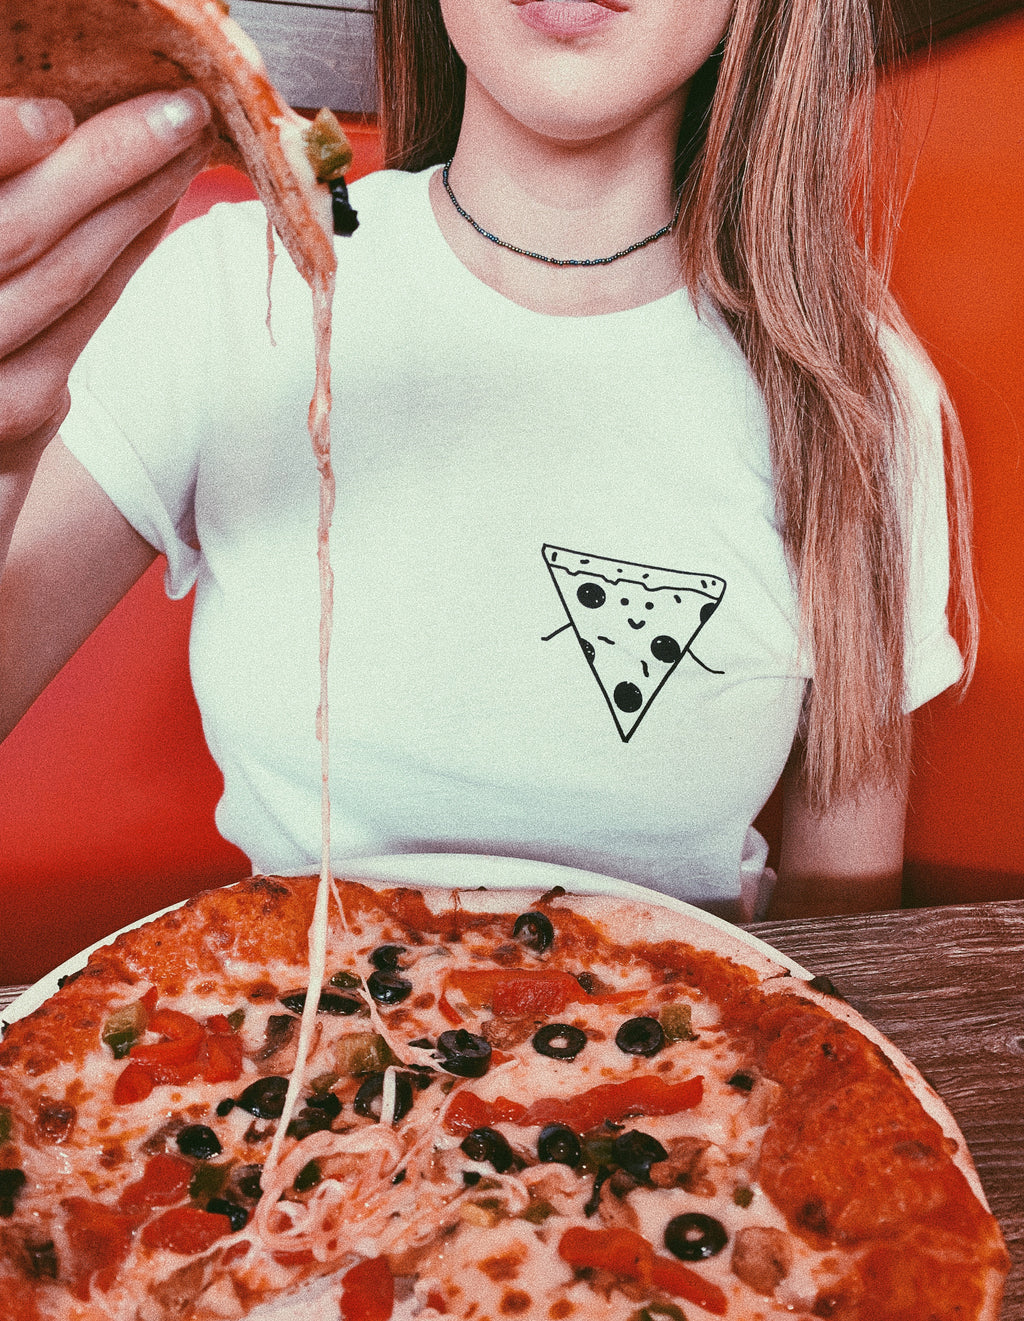 This funny pizza tee is perfect for all the pizza lover in the world! This pizza t shirt shows that you can never go wrong with pizza. Pizza is life!